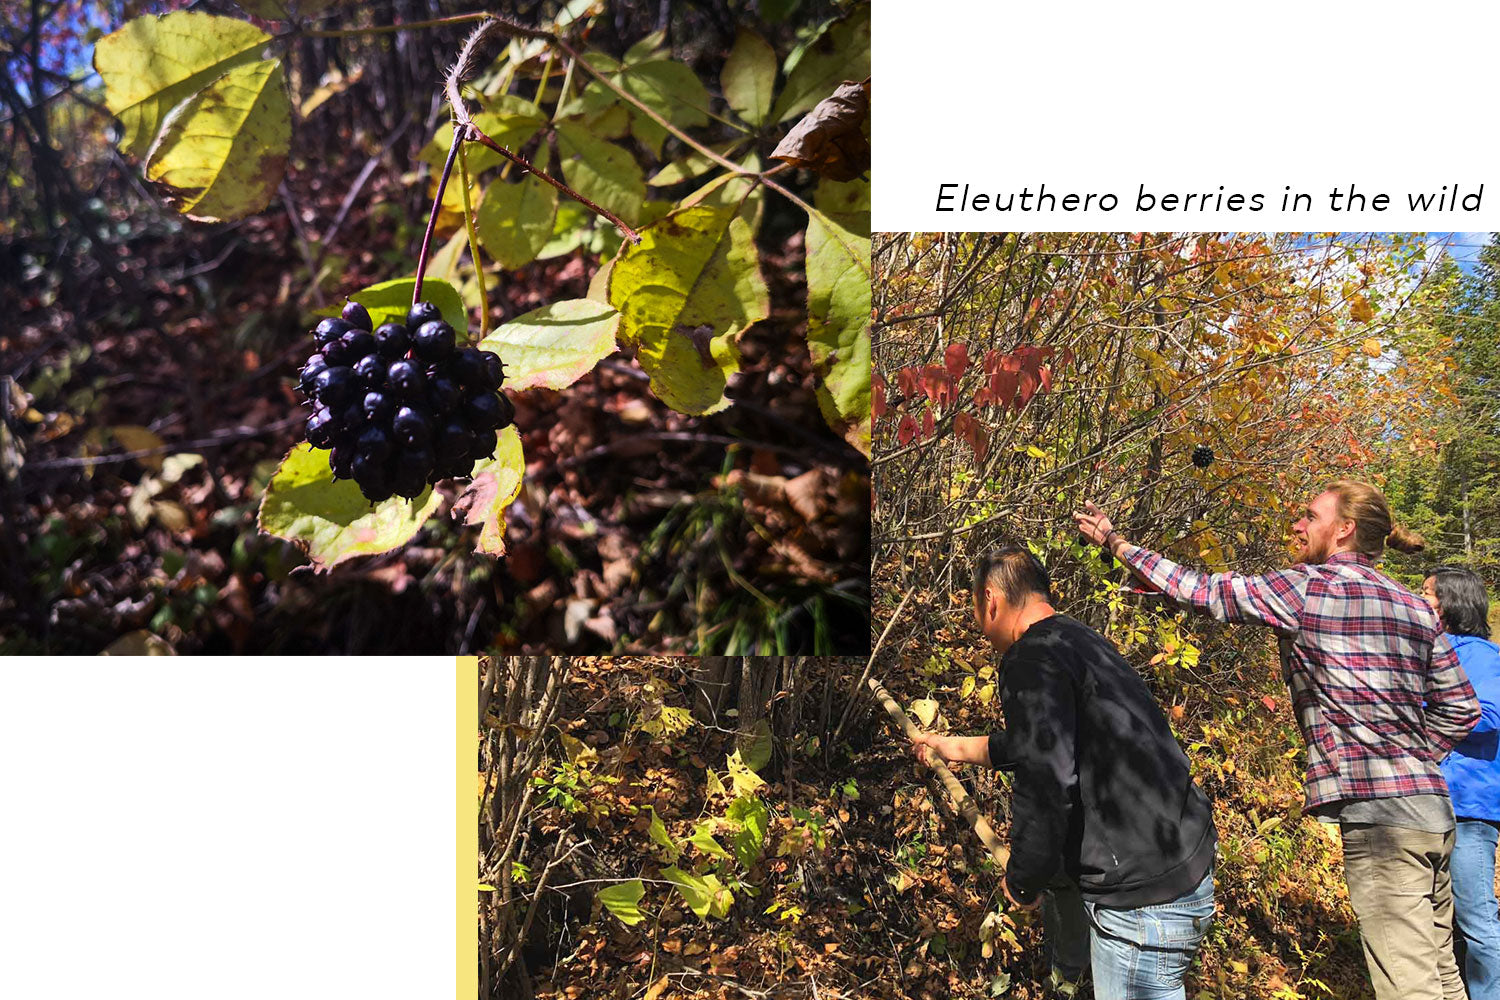 Eleuthera berries in China